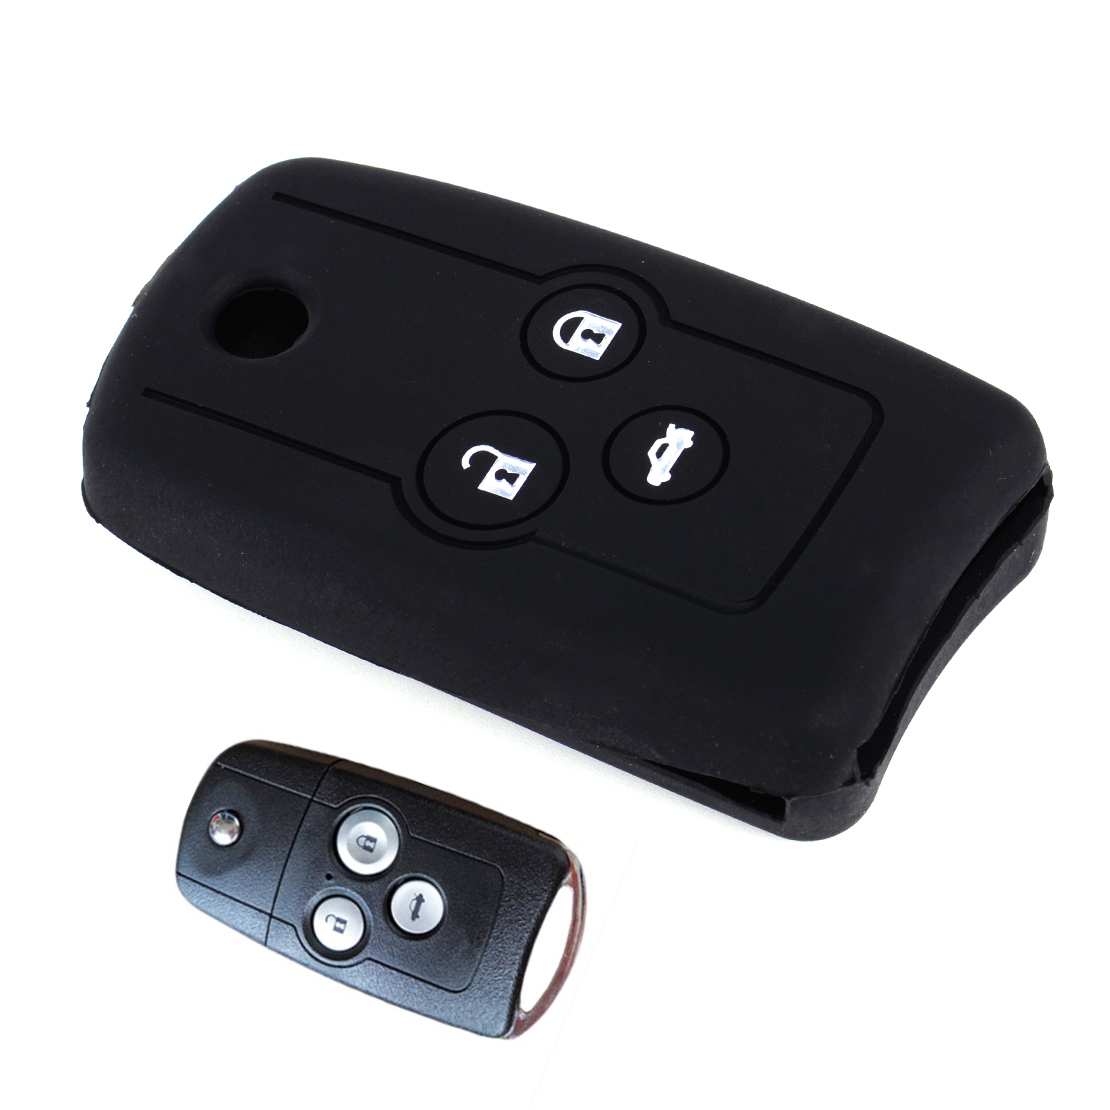 CITALL Black 3 Buttons Silicone Flip Folding Key Cover Case Fob Fit For <font><b>Acura</b></font> TL <font><b>TSX</b></font> ZDX 2010 - 2013 MDX RSX 2002 - <font><b>2006</b></font> image